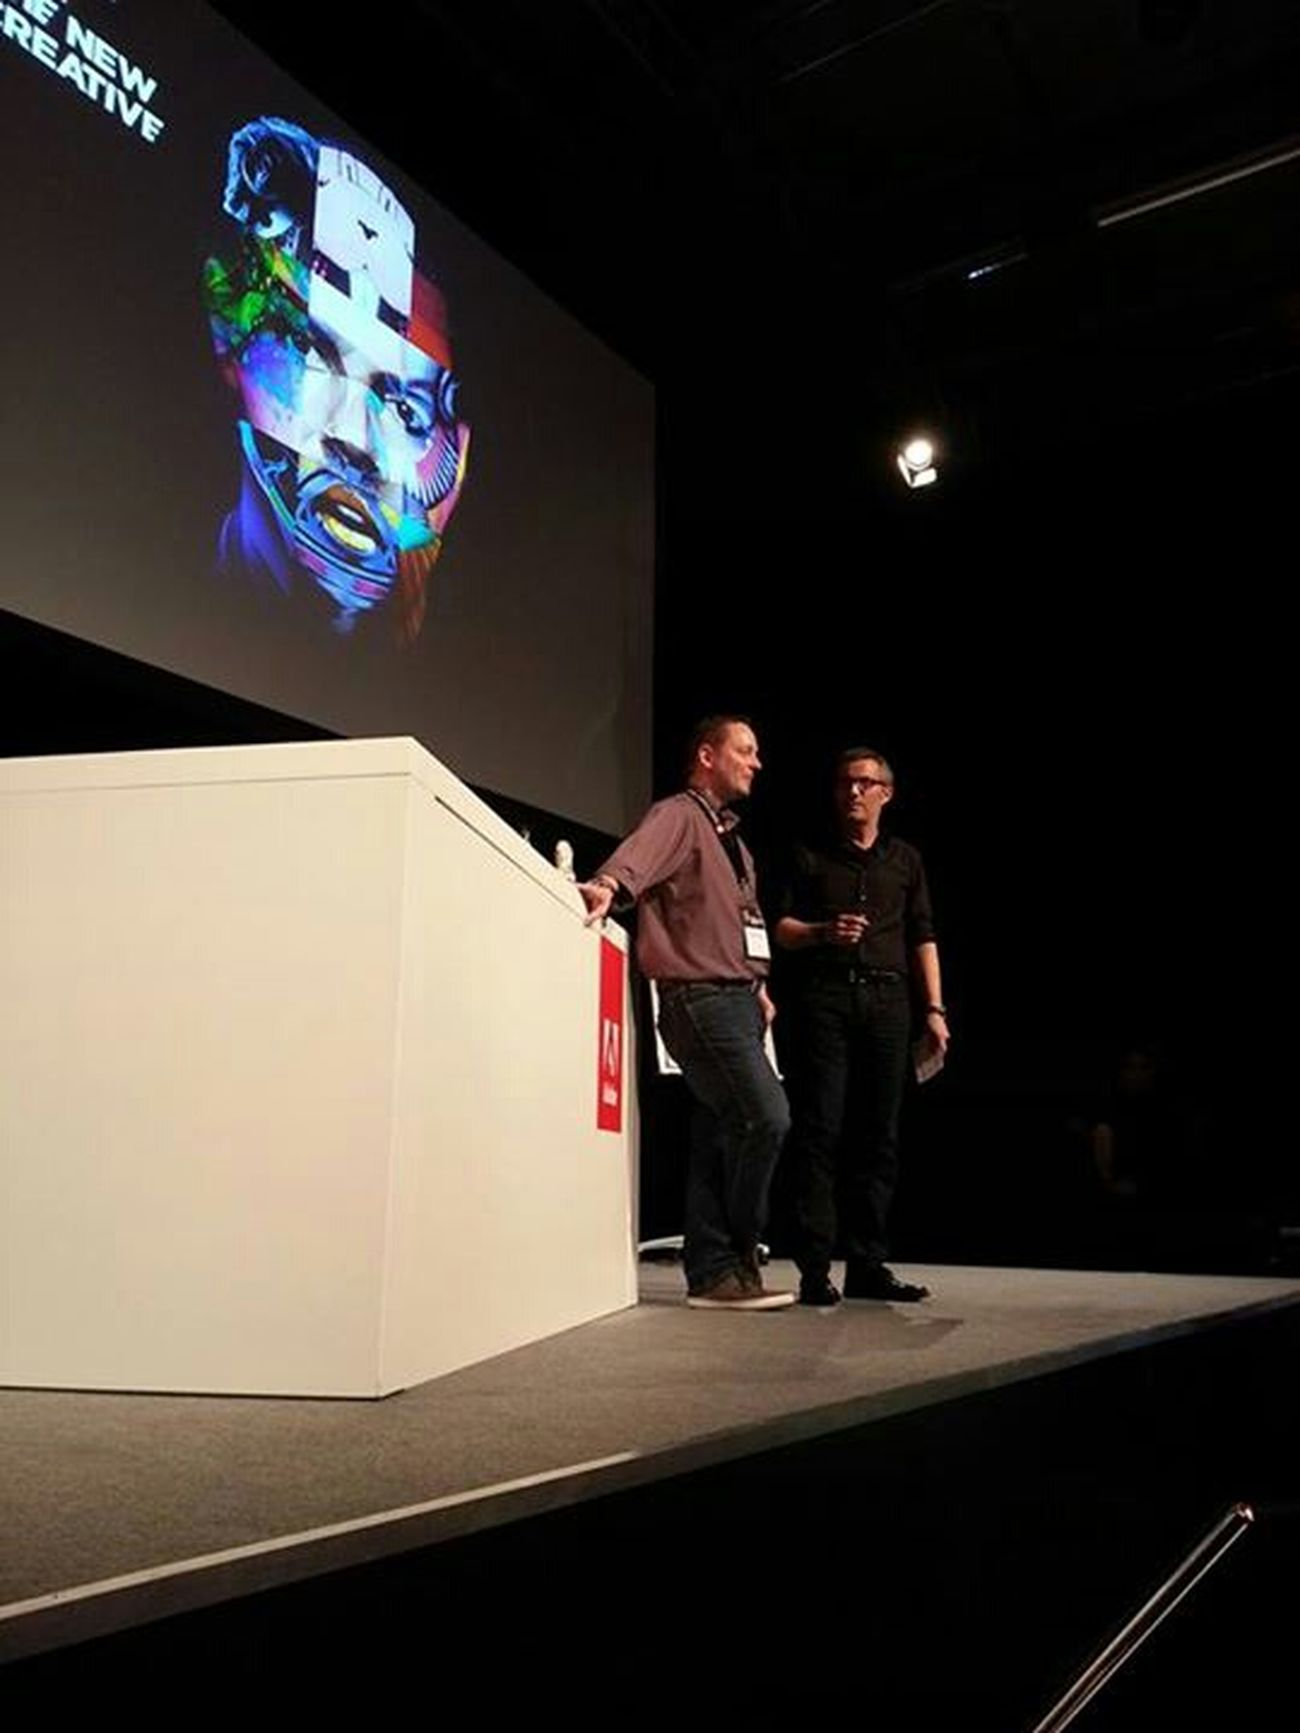 Me speaking at the Adobe Create Now / Creative Jam Event in Berlin , Germany . The event was streamed live on Adobe.de with over 2000 viewers. ( Adobe Photoshop Art Keynote Check This Out Hello World Hi! Behance )